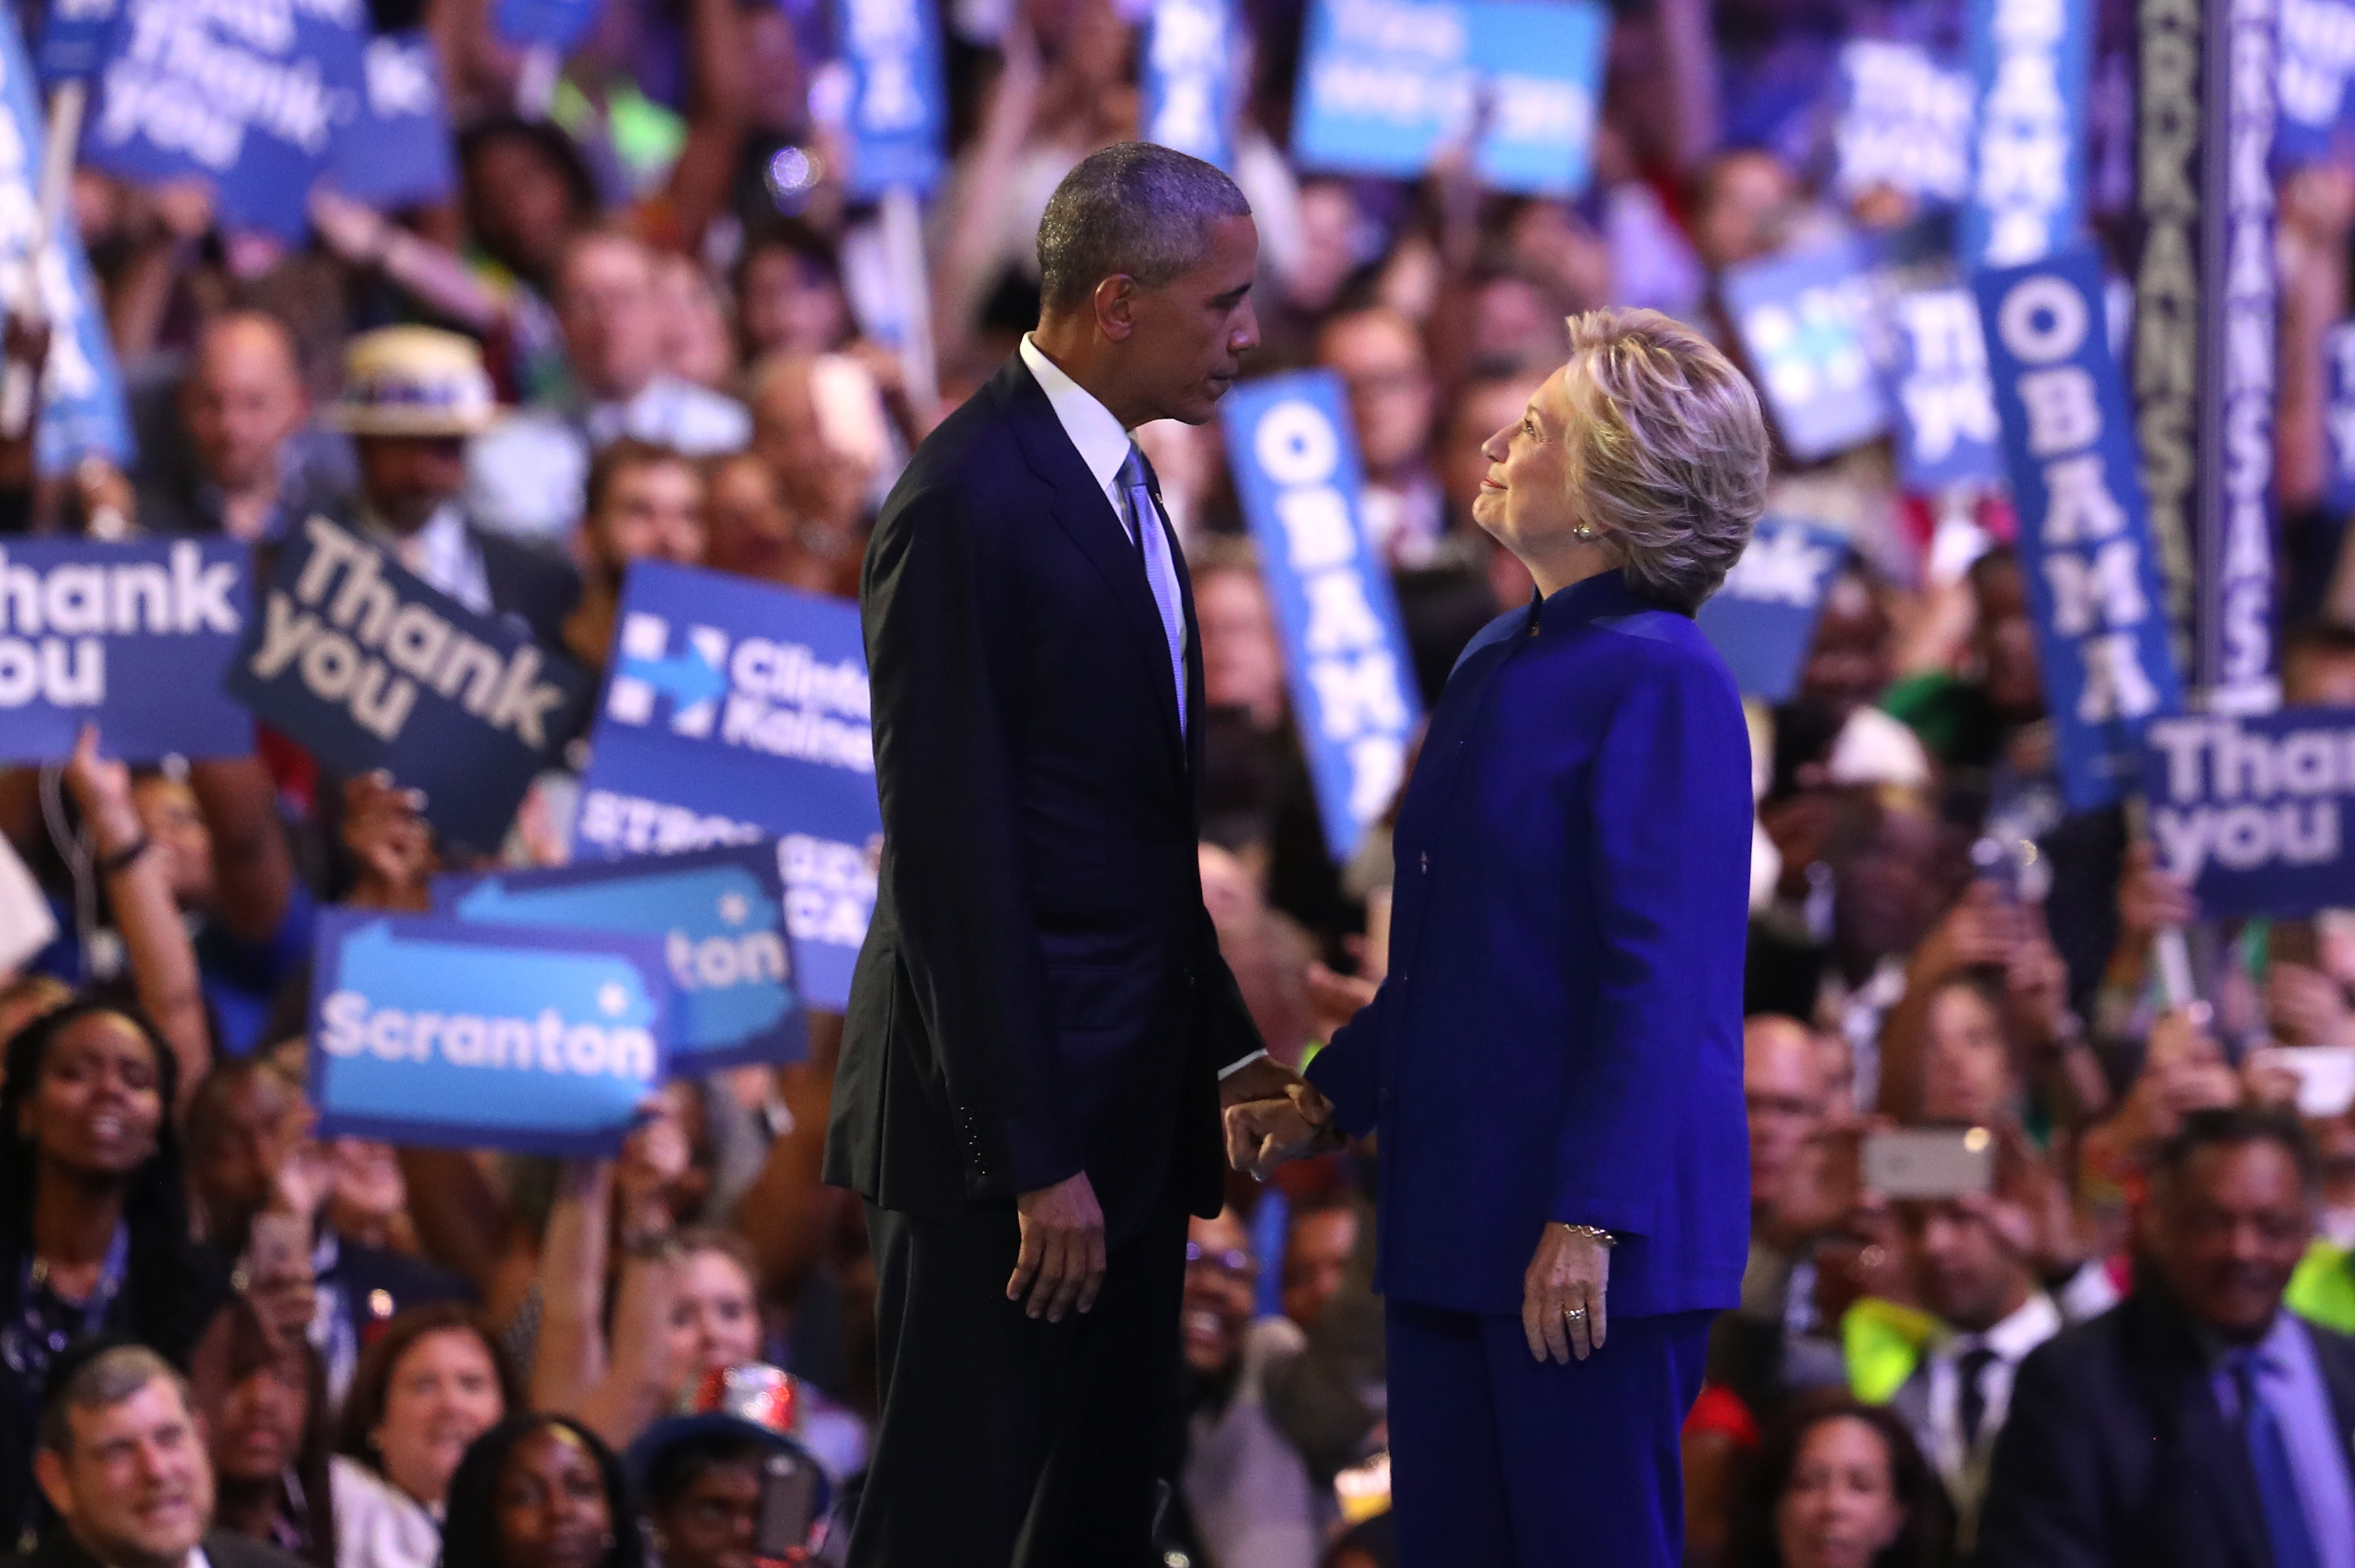 President Obama and Hillary Clinton stand together on stage on the third day of the Democratic National Convention in Philadelphia